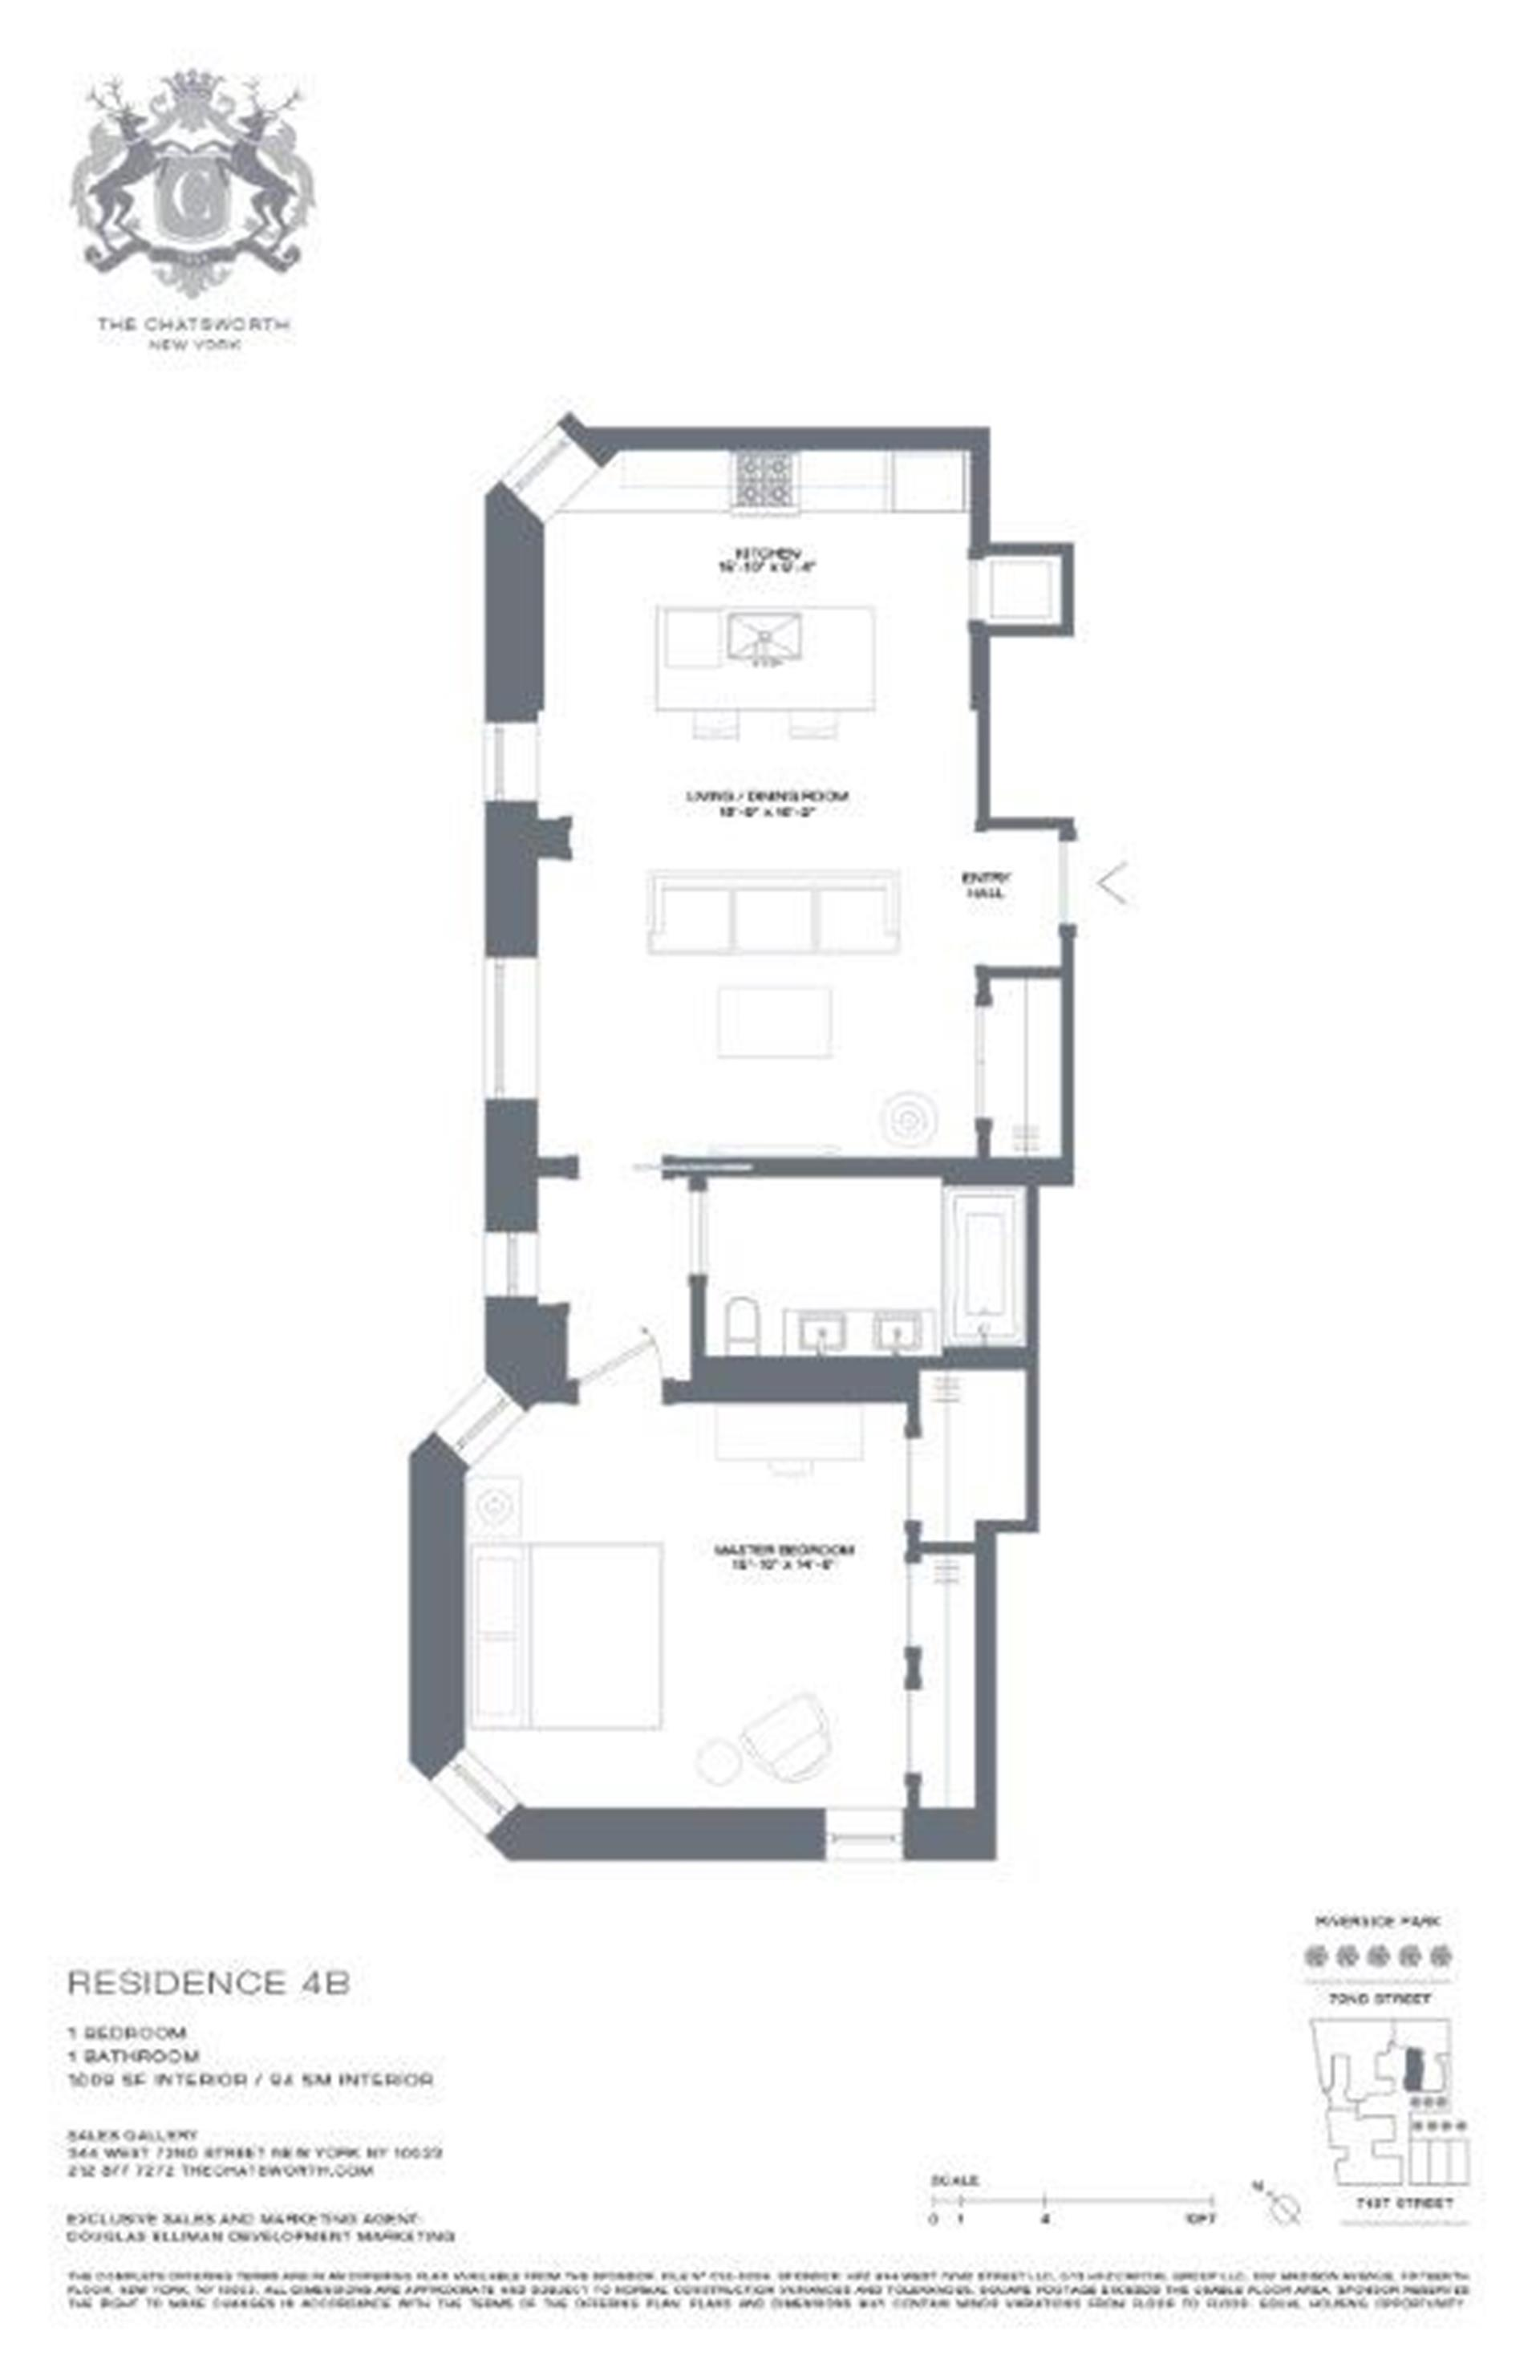 Floor plan of The Chatsworth, 344 West 72nd St, 4B - Upper West Side, New York